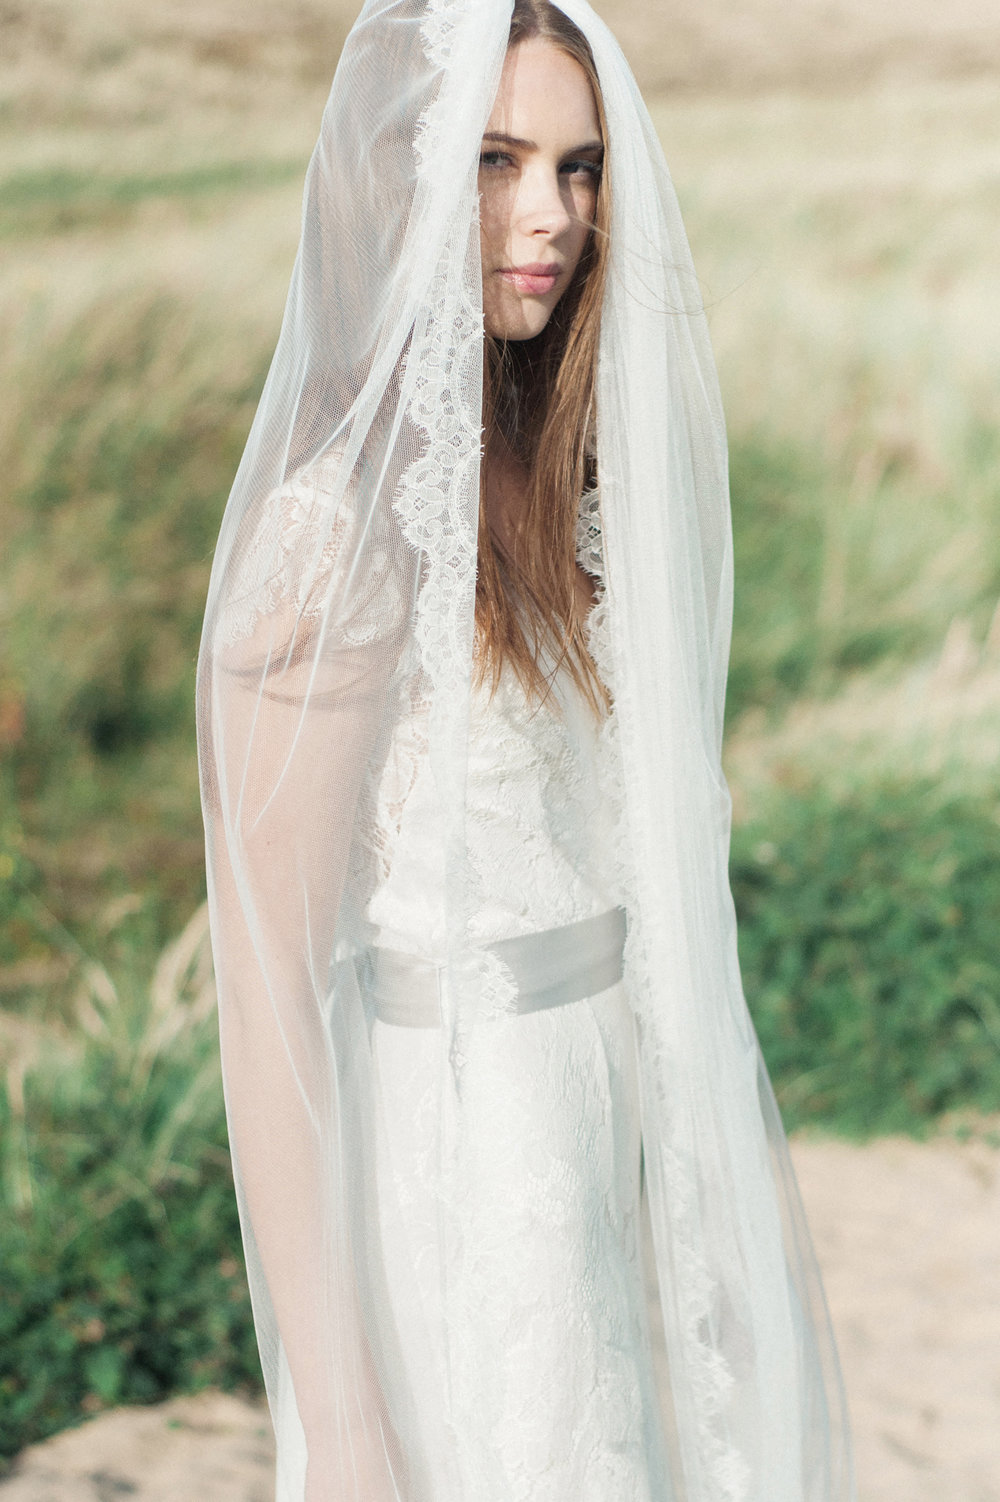 Kate-Beaumont-Wedding-Dresses-Formby-Beach-Emma-Pilkington-3.jpg